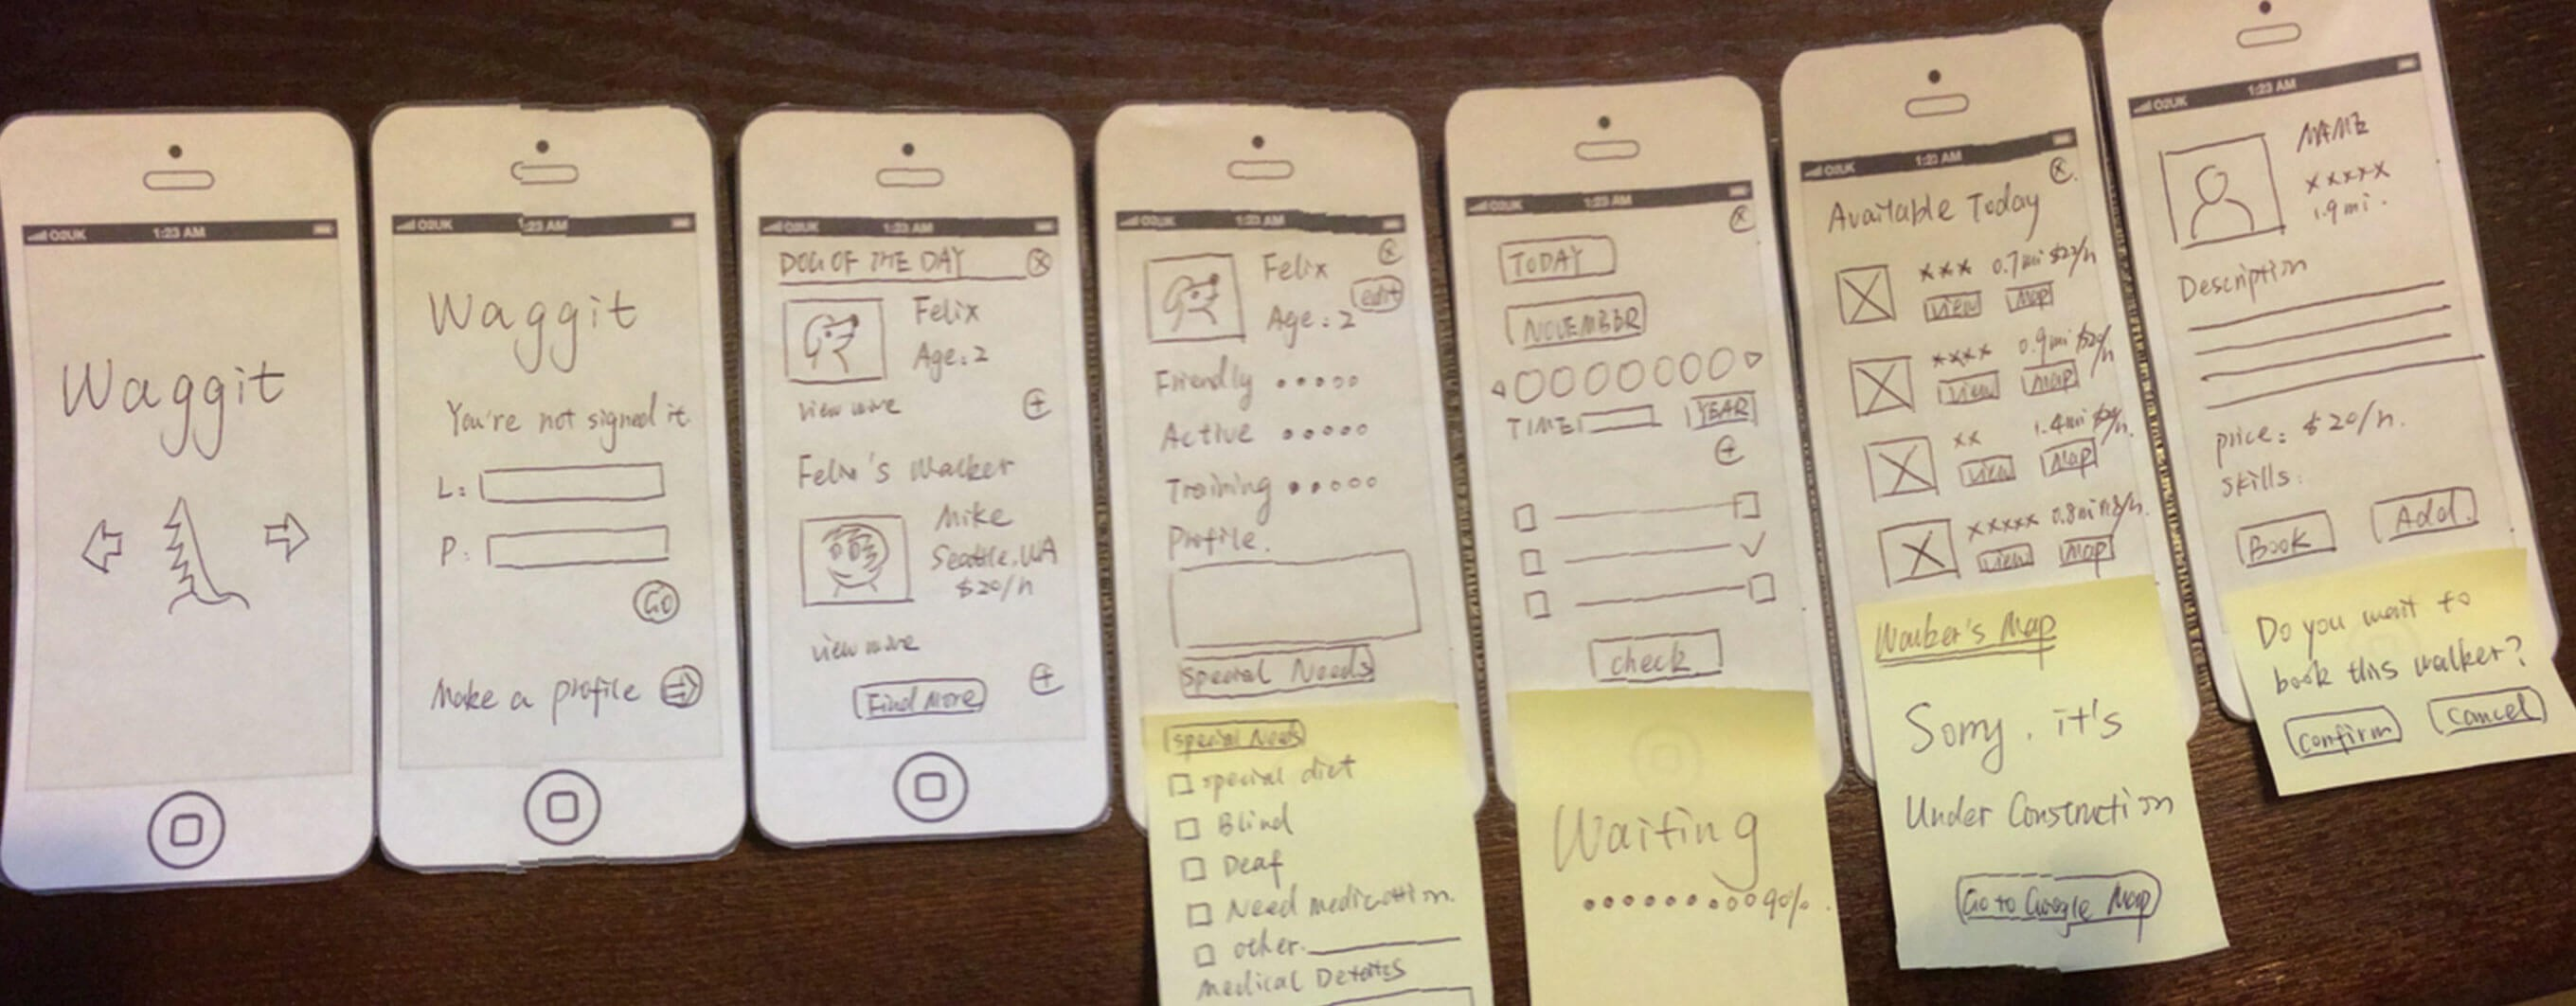 A paper interface prototype